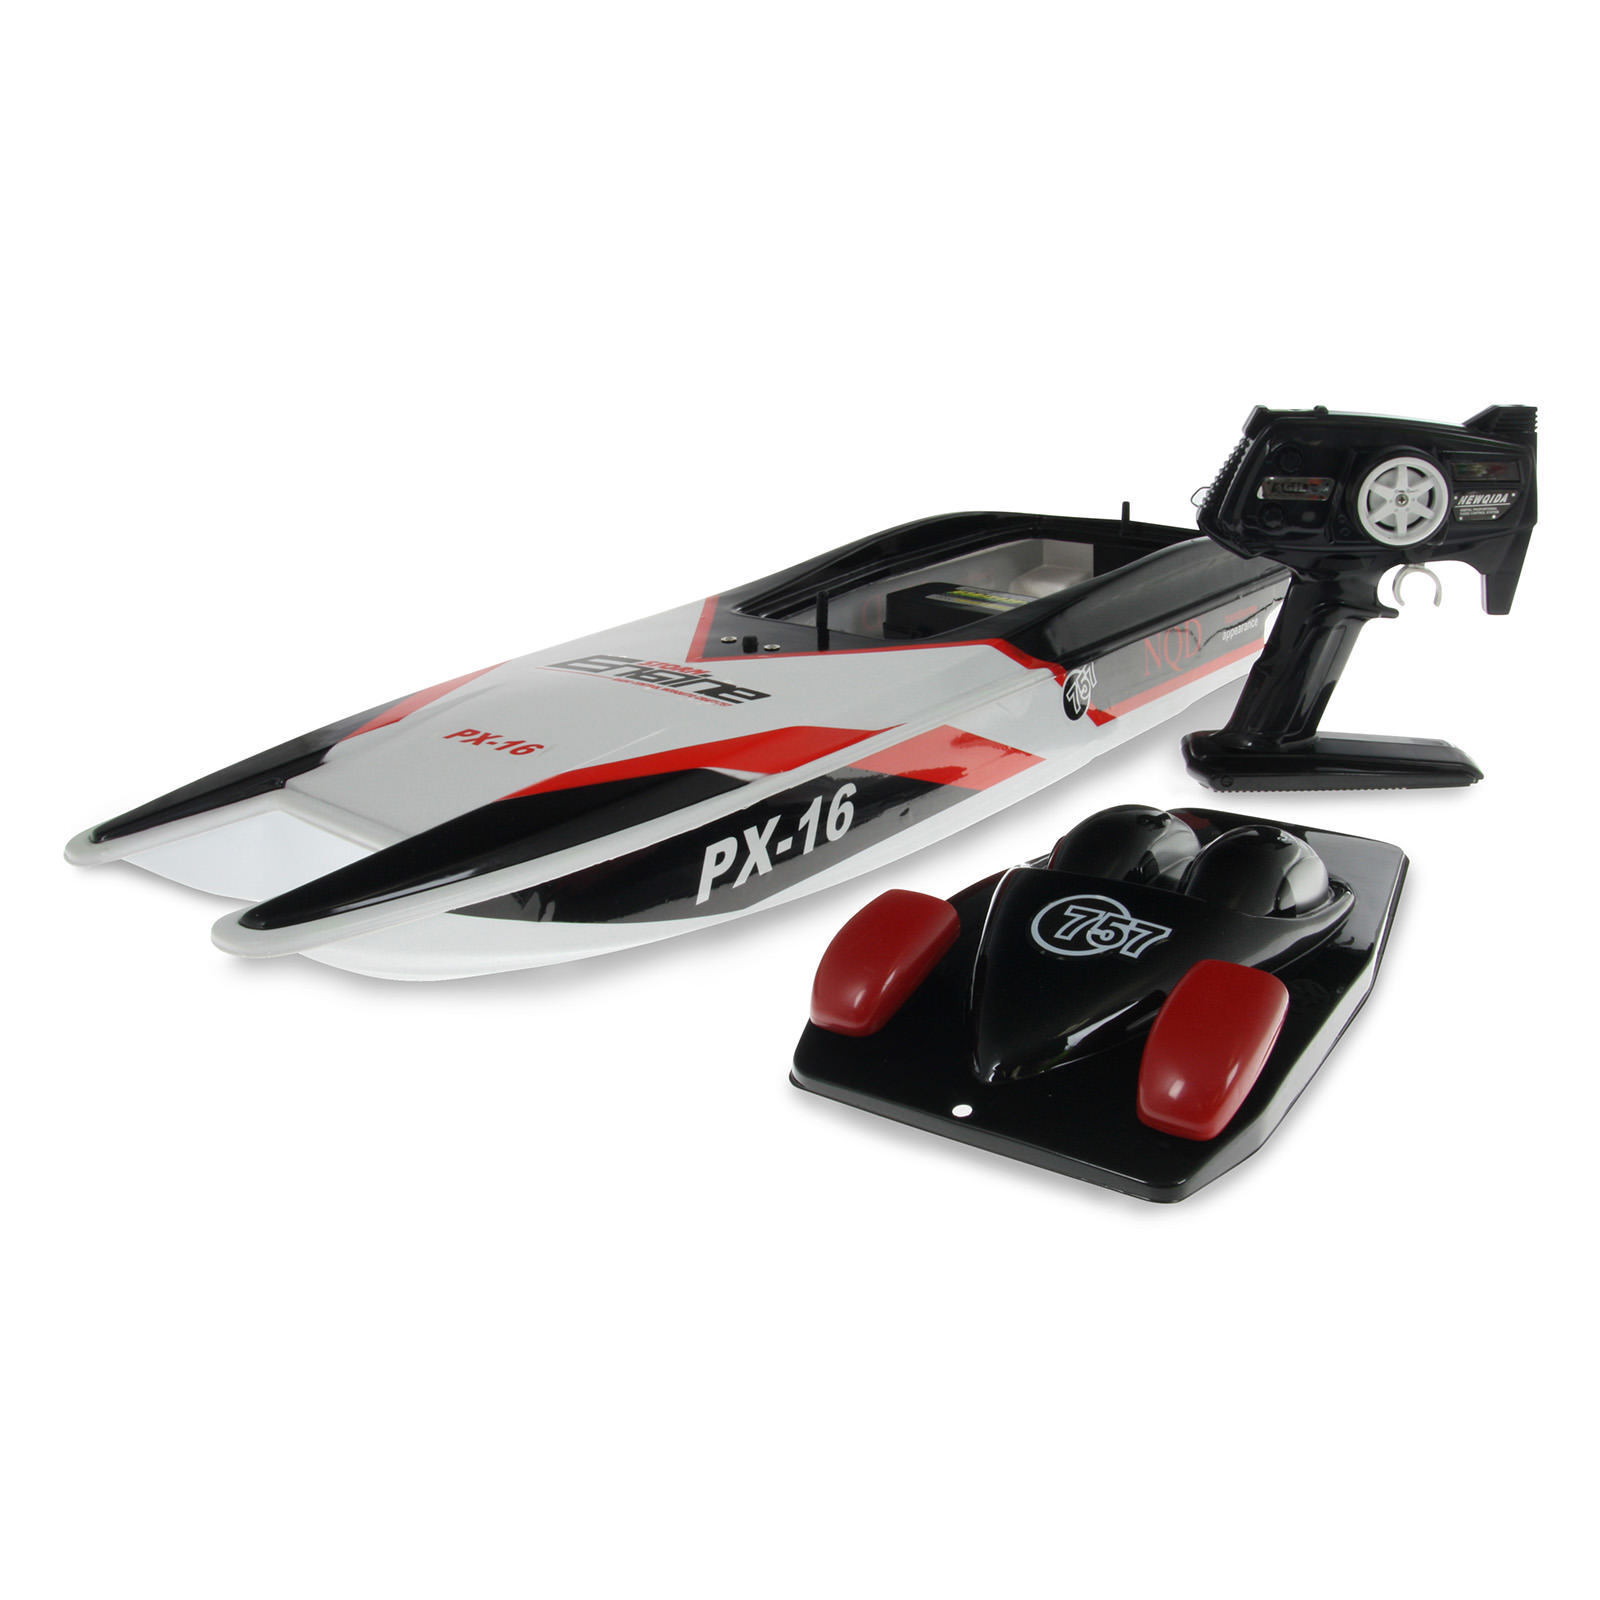 2.4g 30  sturm stealth - px-16 racing funkfernsteuerung racing speed boat) 1   16